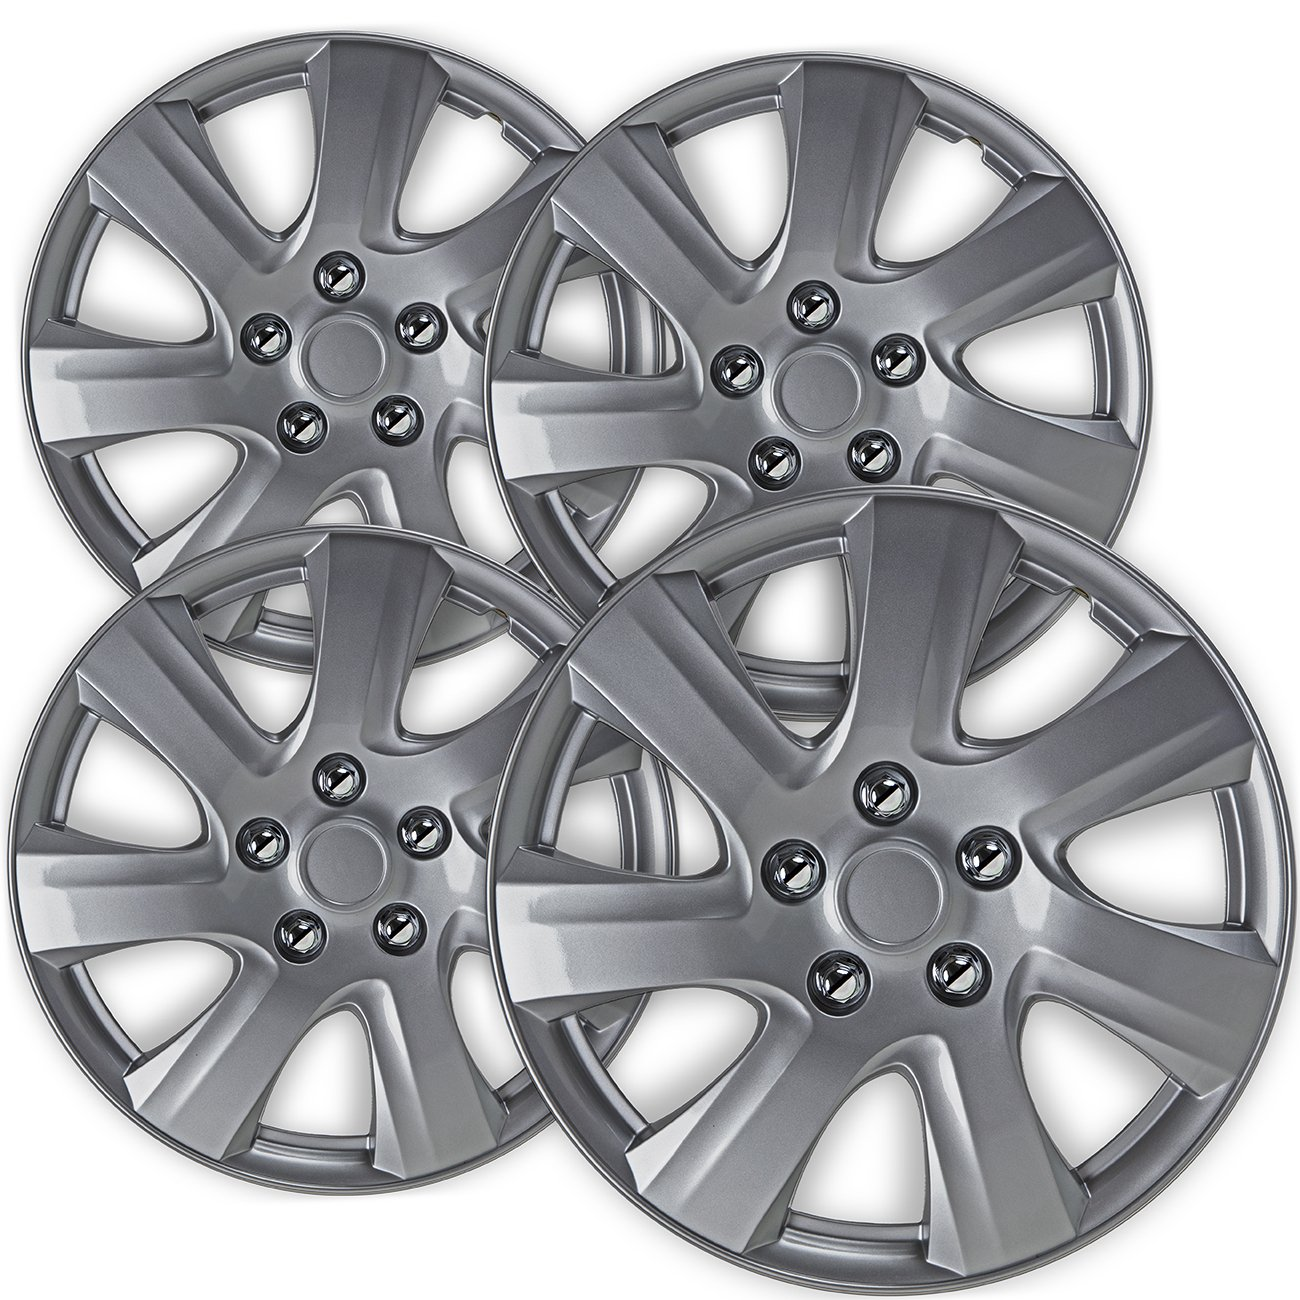 515 Wagon Wire Wheels - WIRE Center •